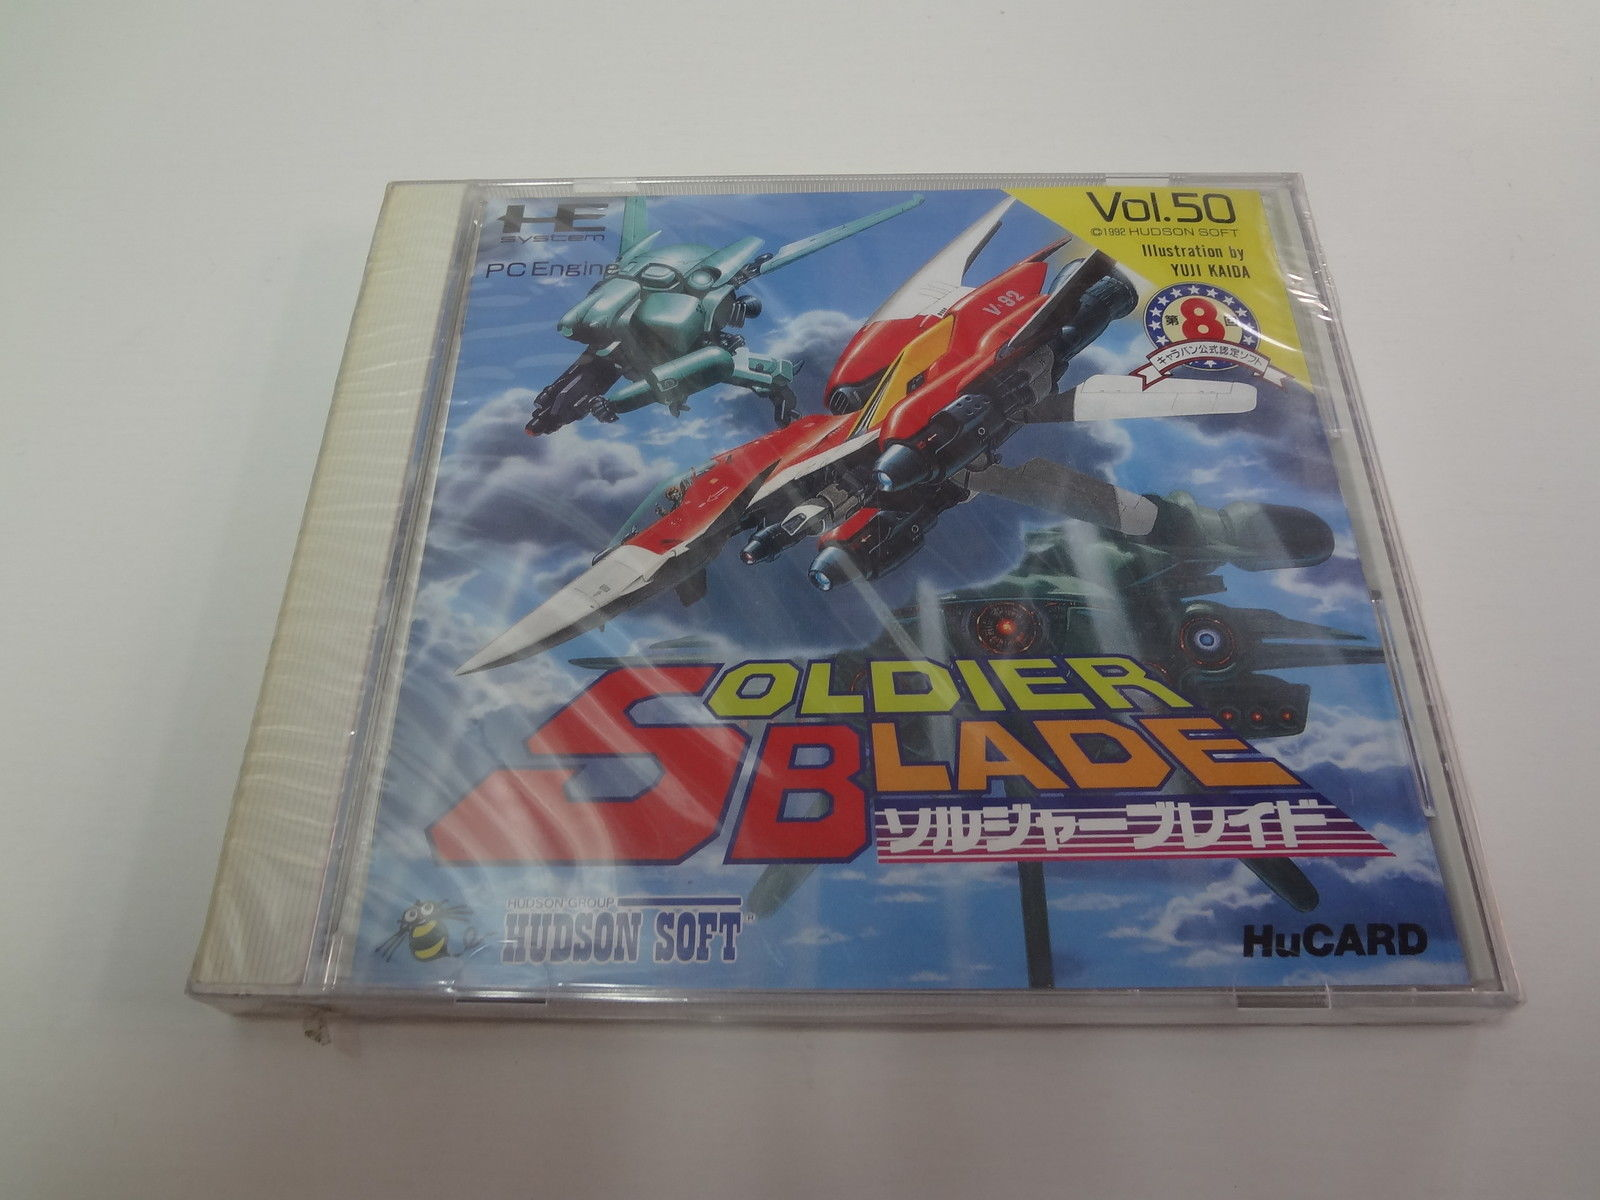 Soldier Blade NEC PC Engine Hu-Card NEW